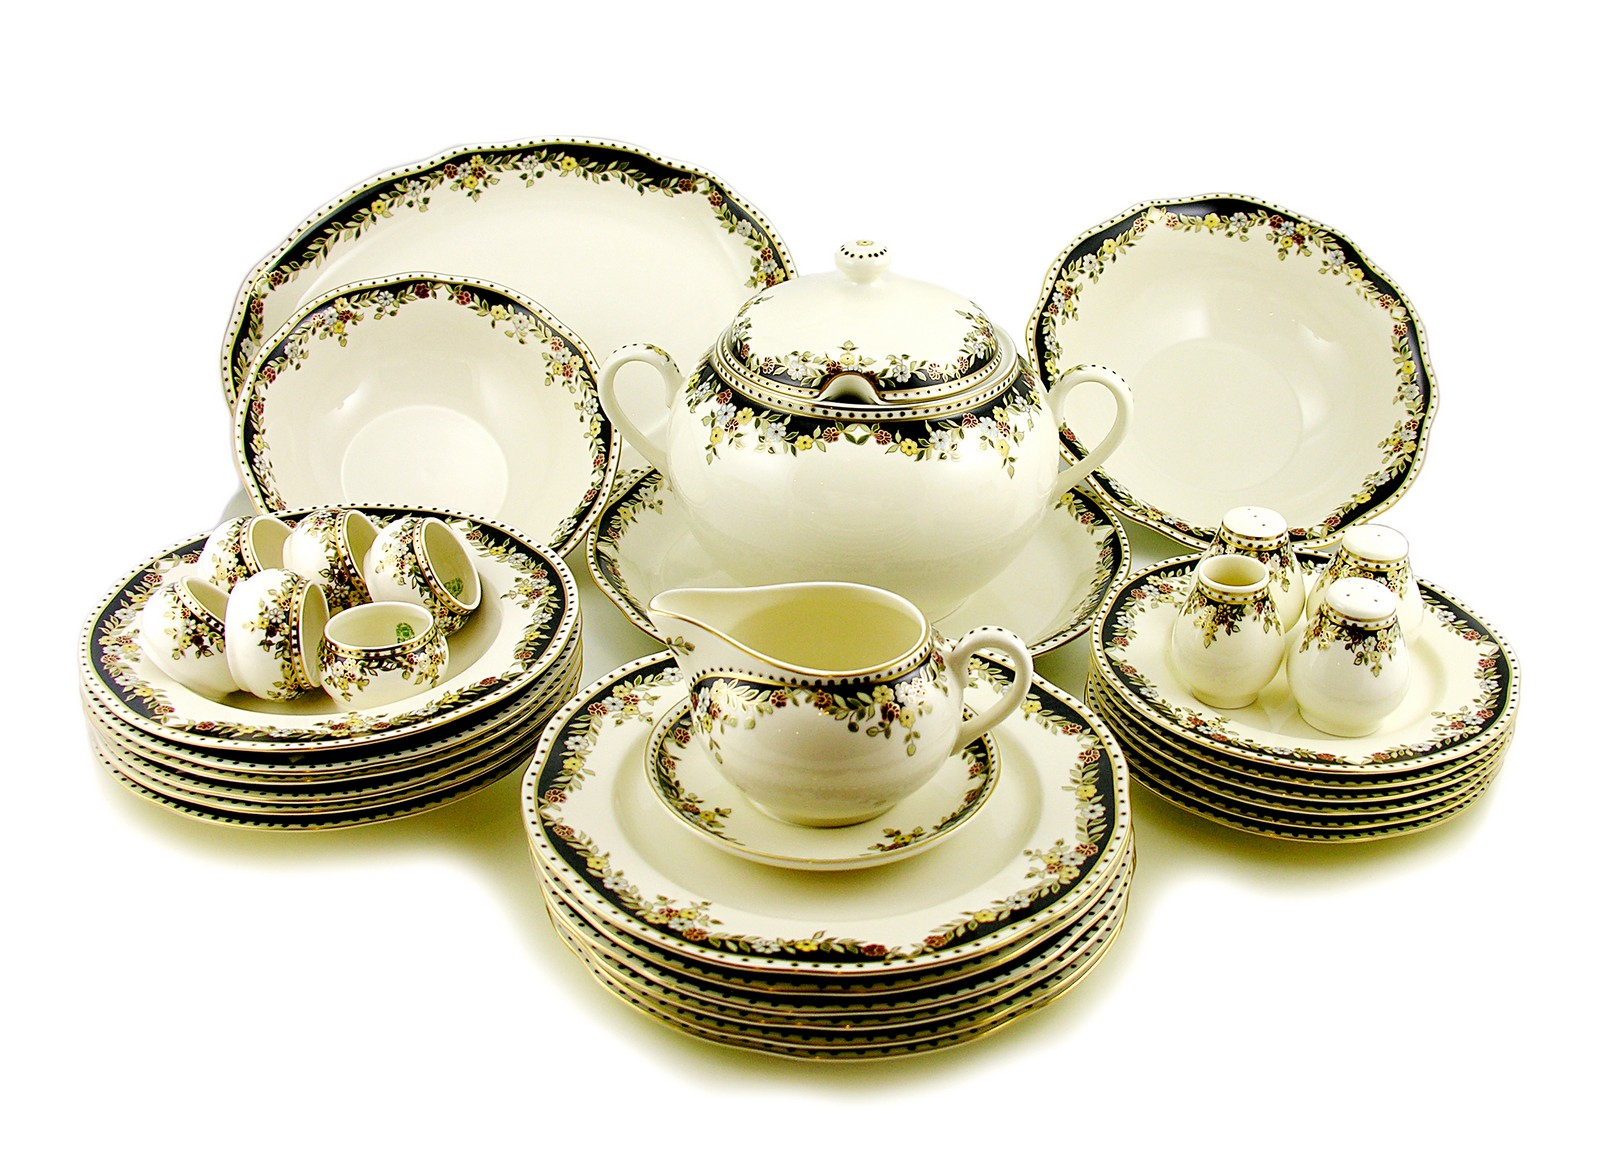 hungarian porcelain zsolnay sissi decor dinner set for 6 ebay